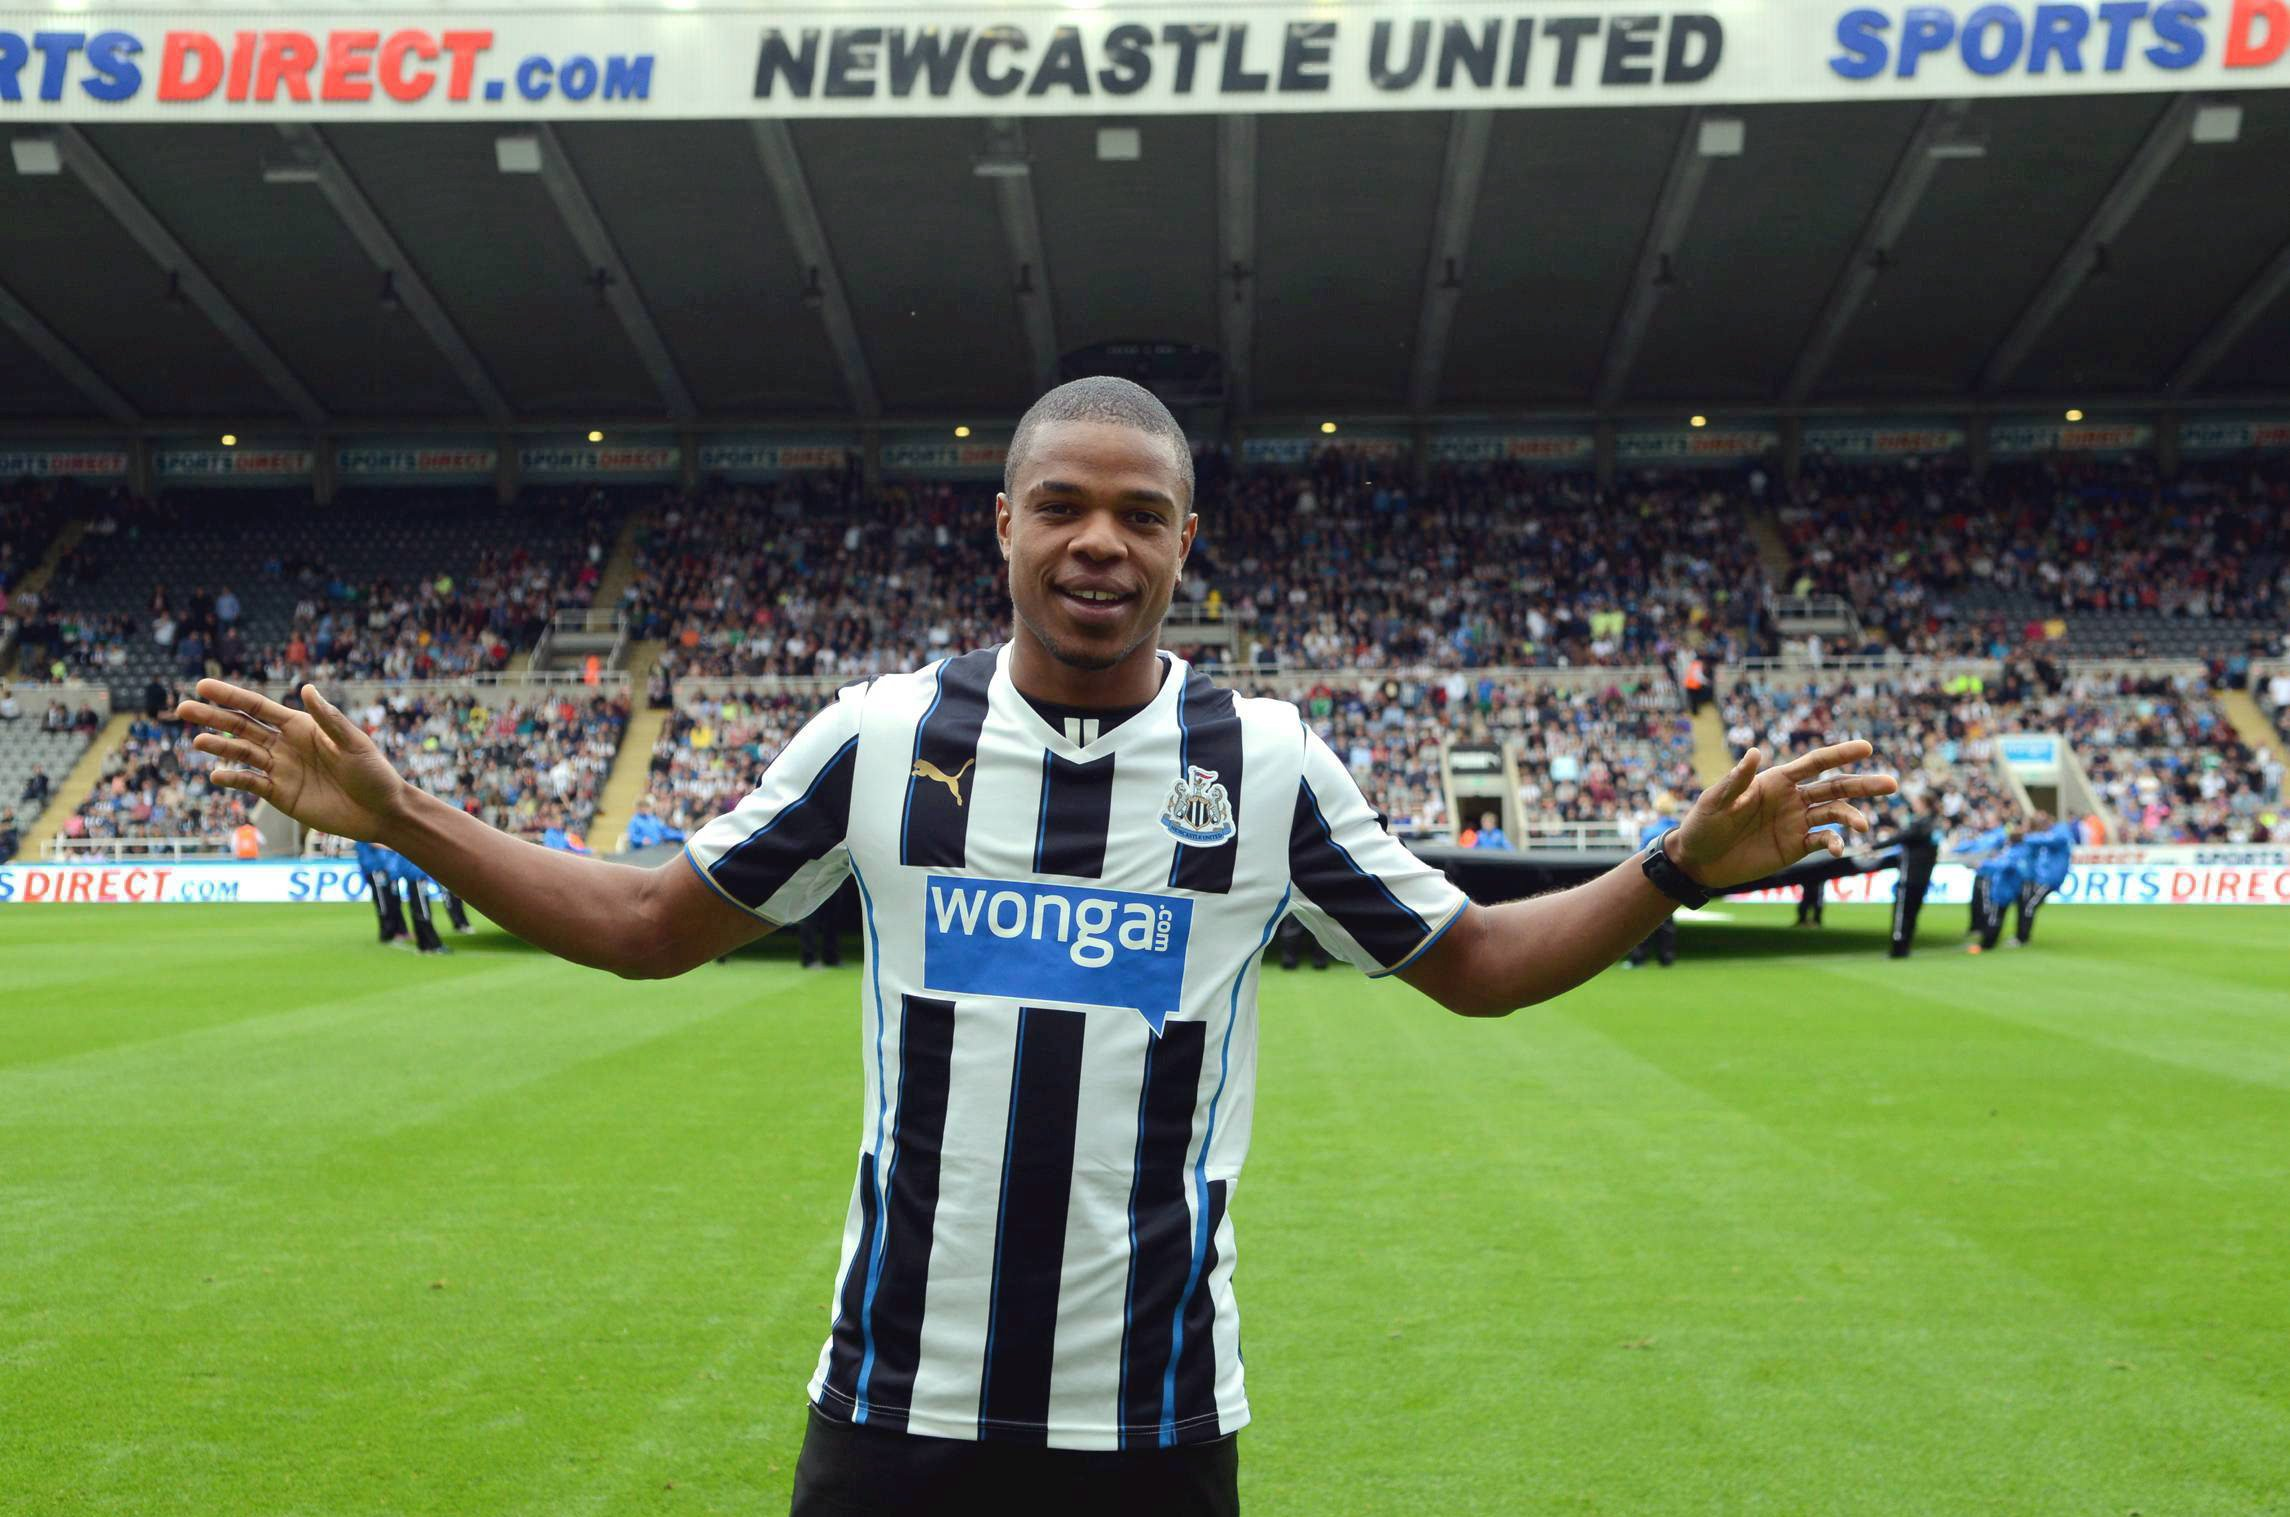 ARSENAL TARGET: Arsene Wenger will look to sign Loic Remy this summer